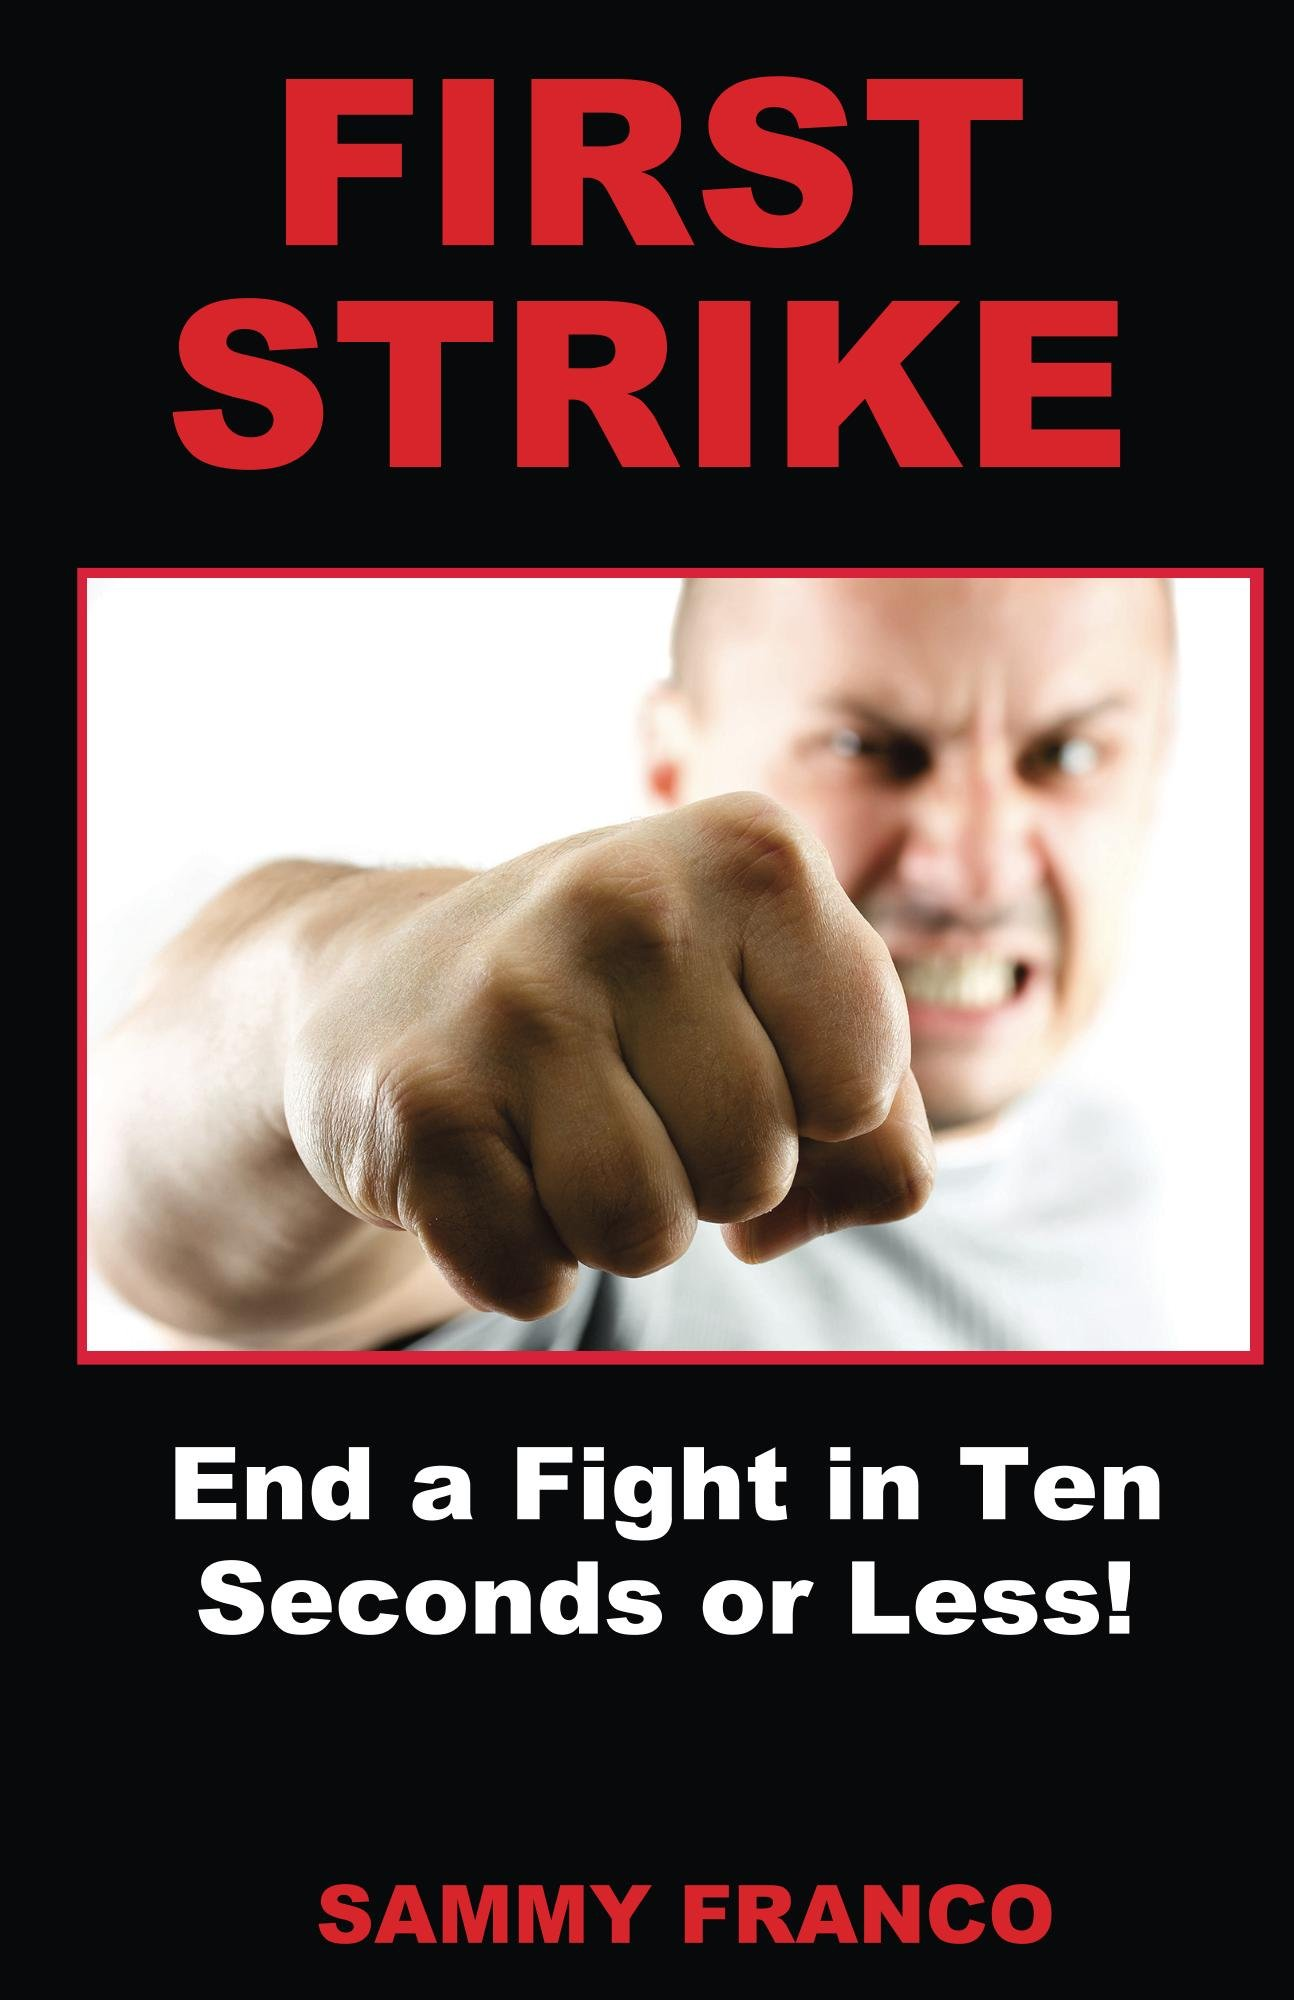 Download First Strike: End a Fight in Ten Seconds or Less! (English Edition)